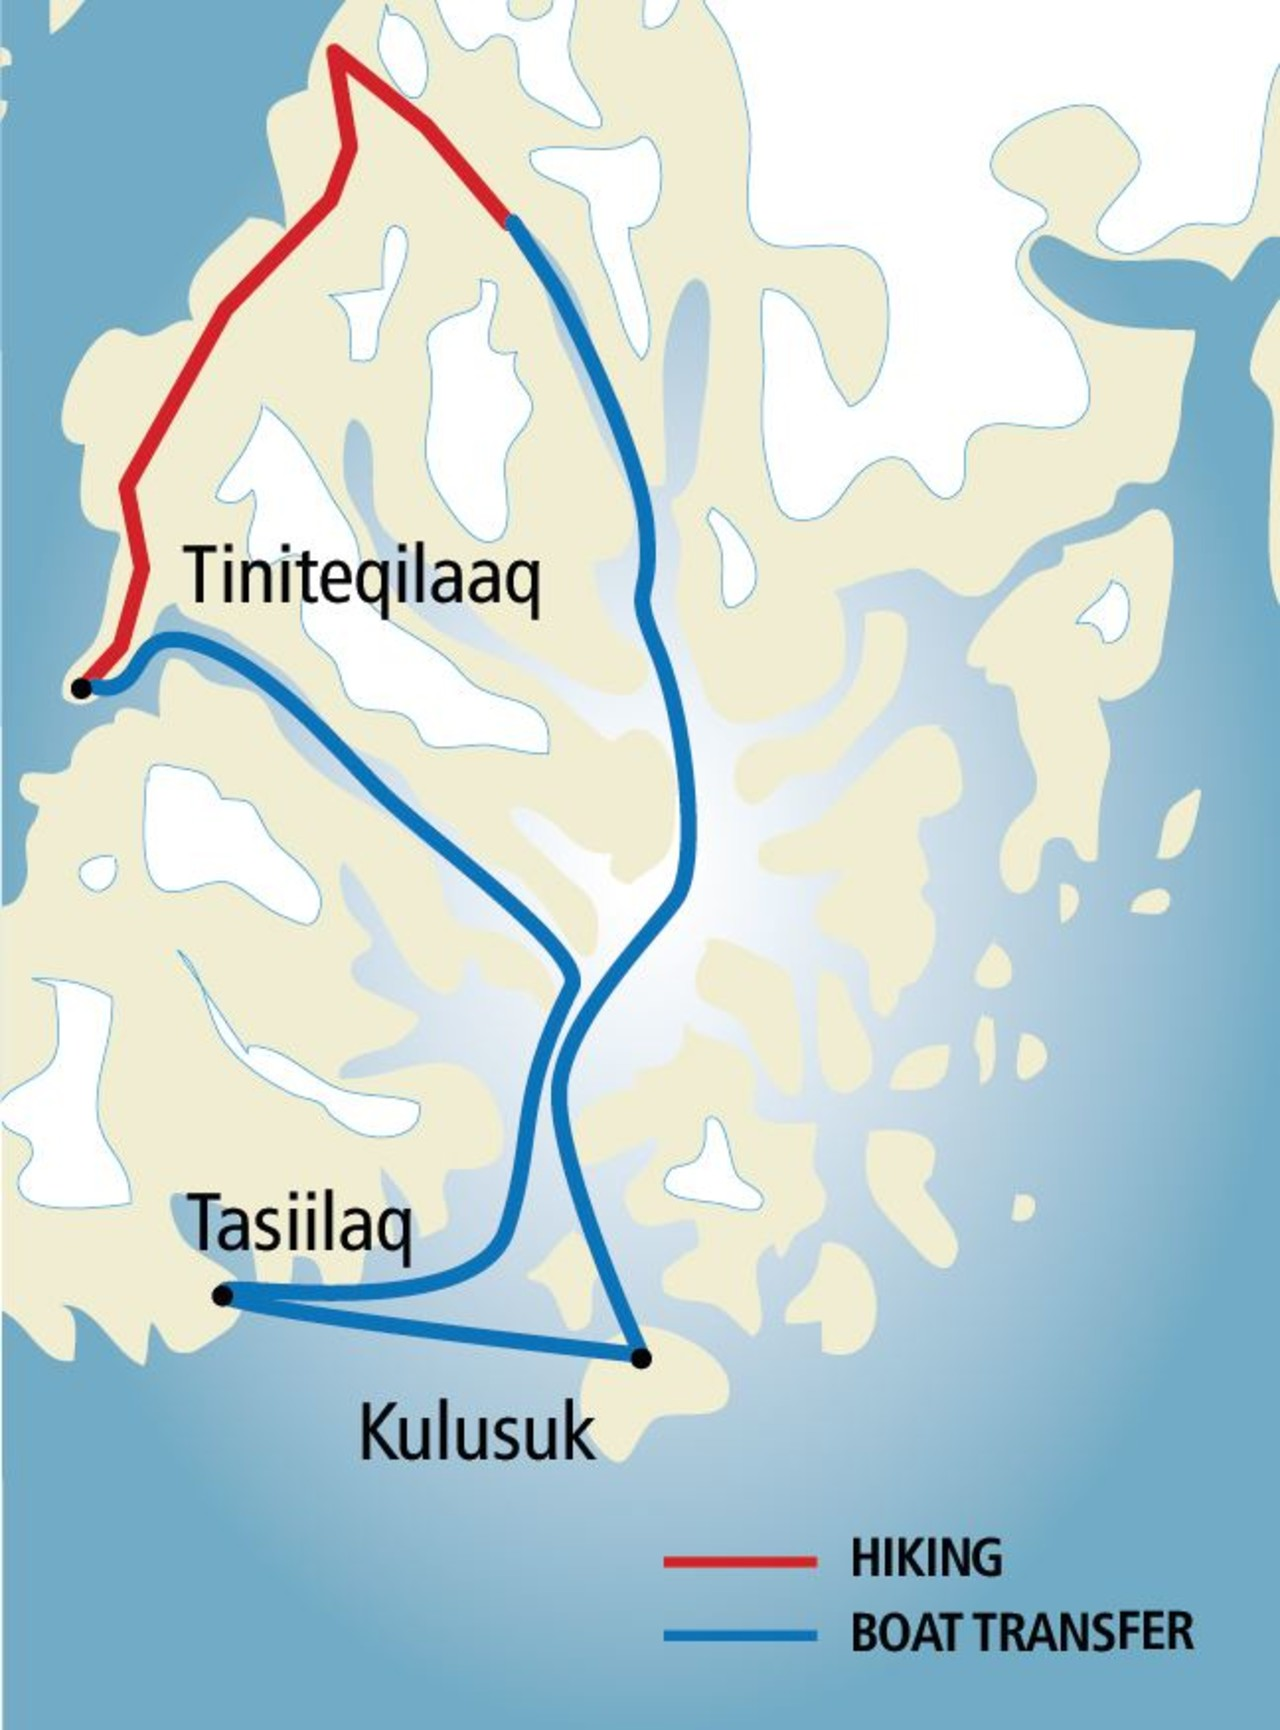 A map of a part of East Greenland showing the route from Kulusuk to Tiniteqilaaq and Tasiilaq